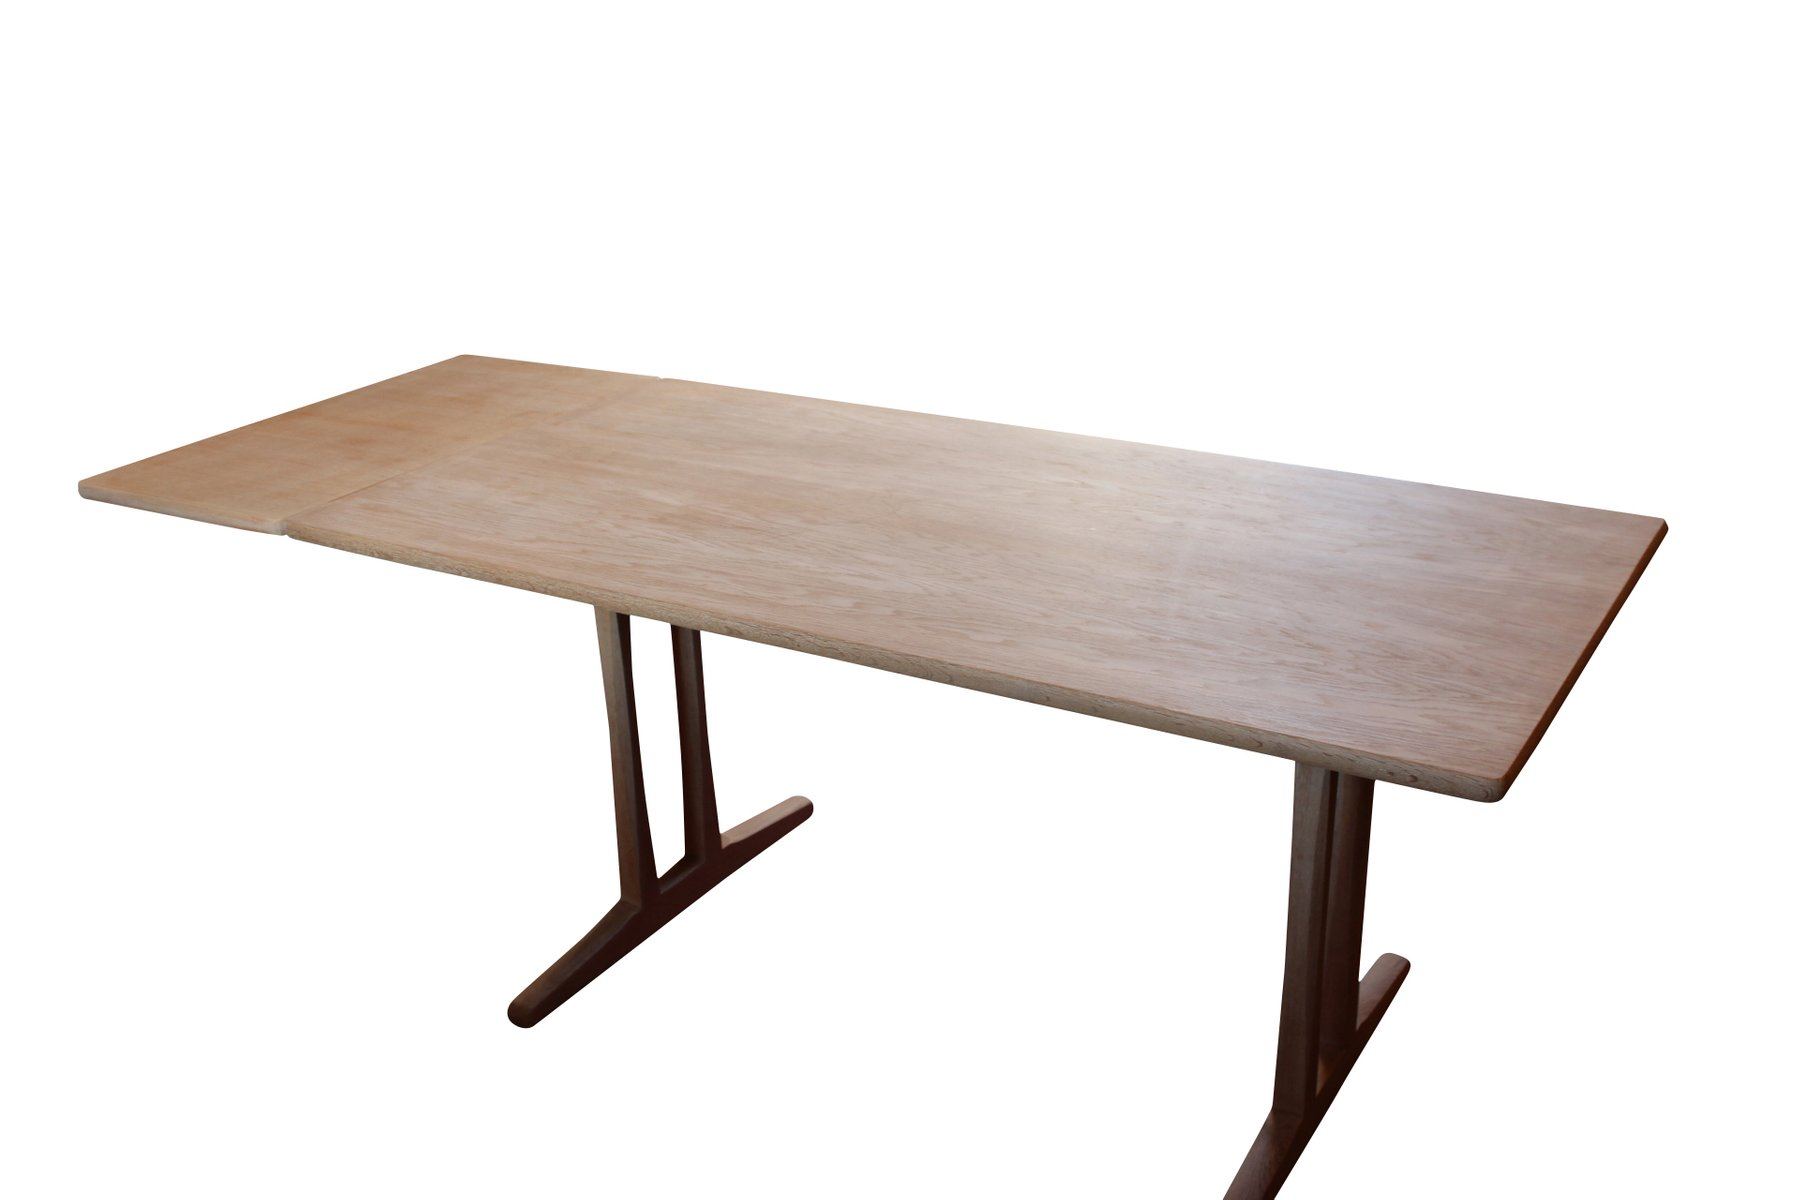 Japanese Dining Table For Sale C35 Shaker Dining Table By Børge Mogensen For F D B